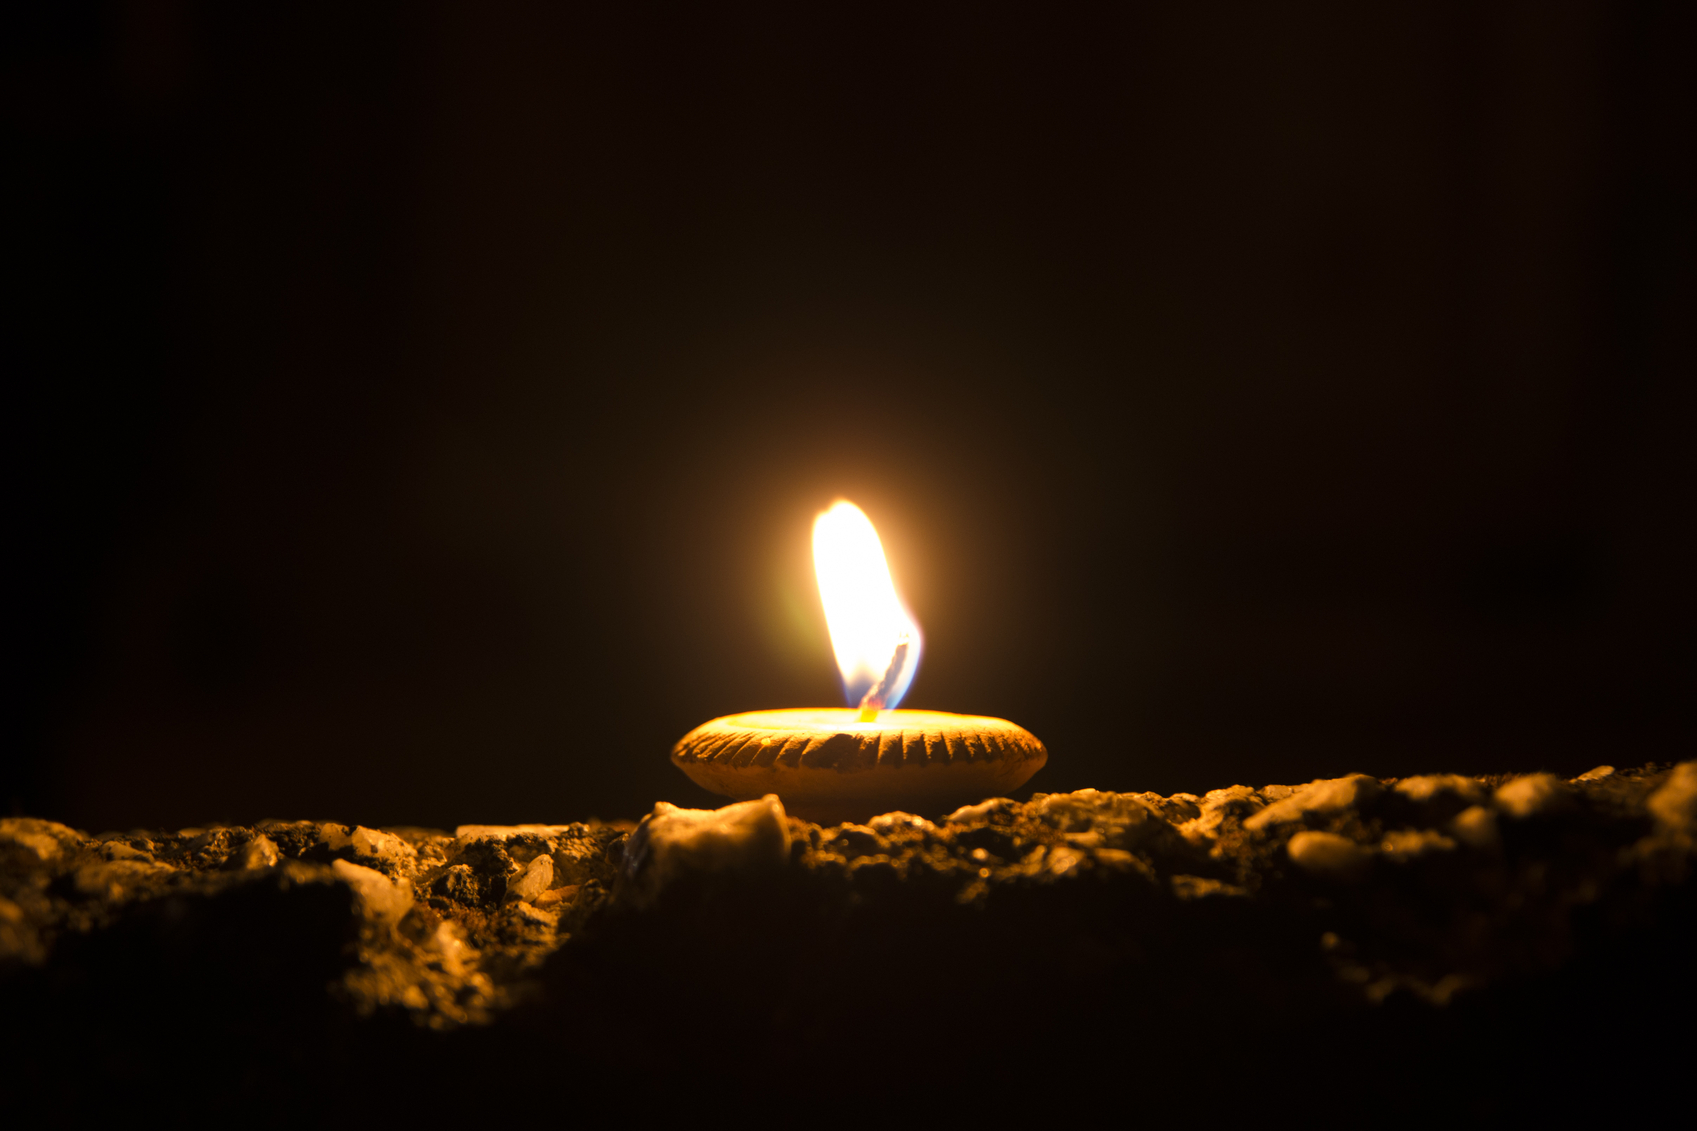 Small candle in the dark